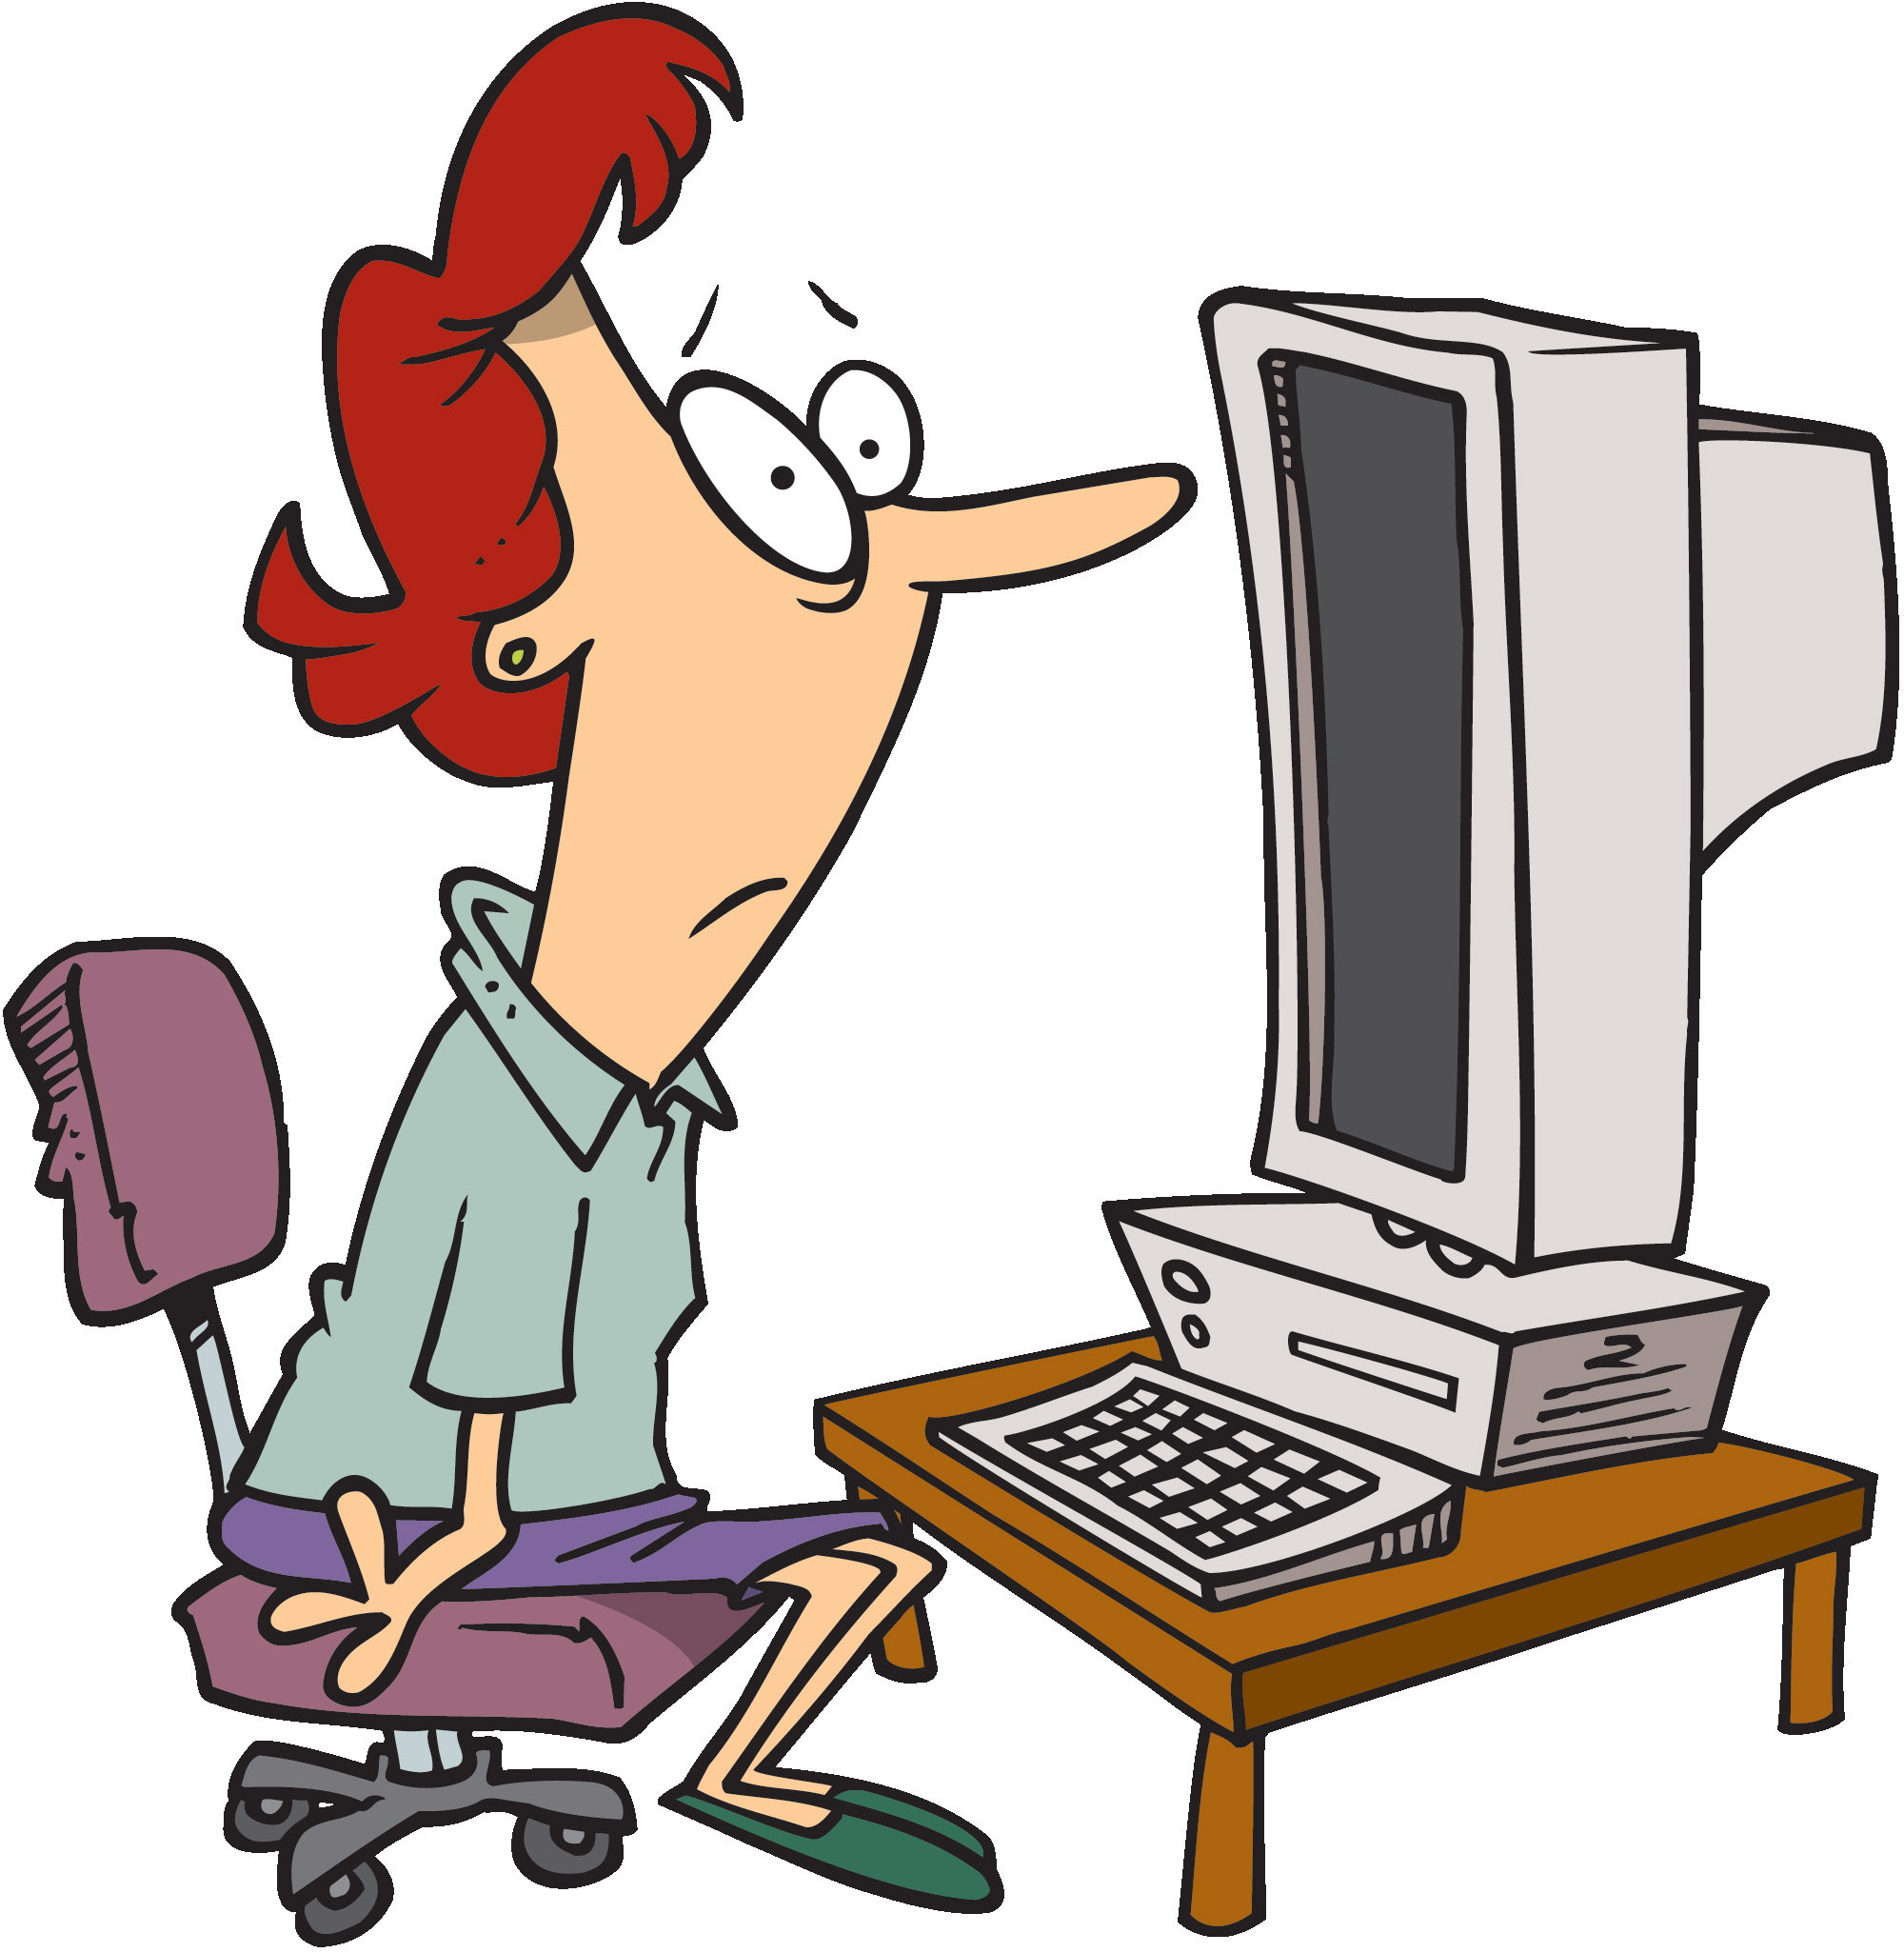 2000x2051 Frustrated Person On Computer Animated Clipart